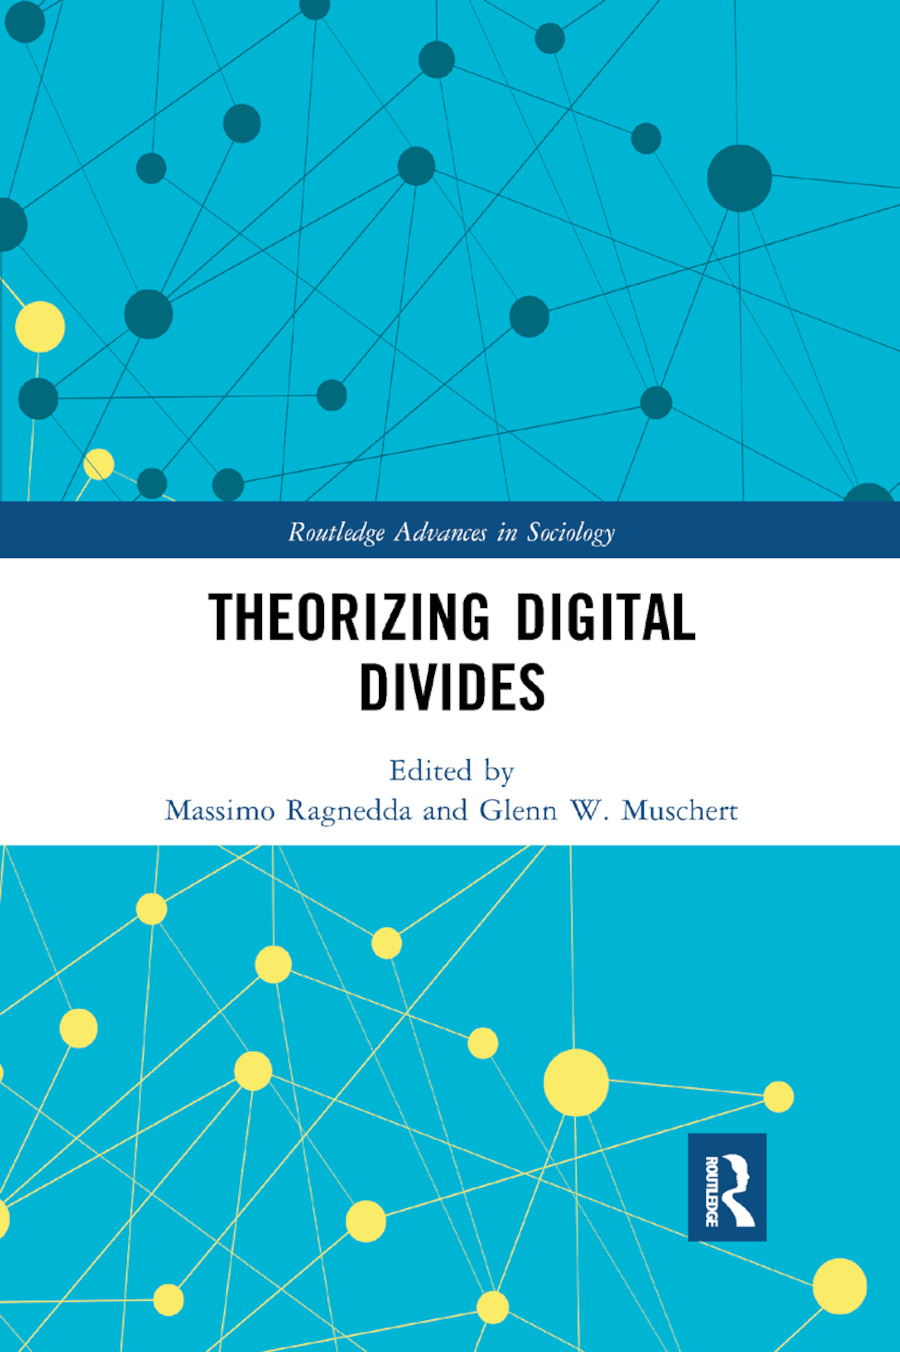 Theorizing Digital Divides